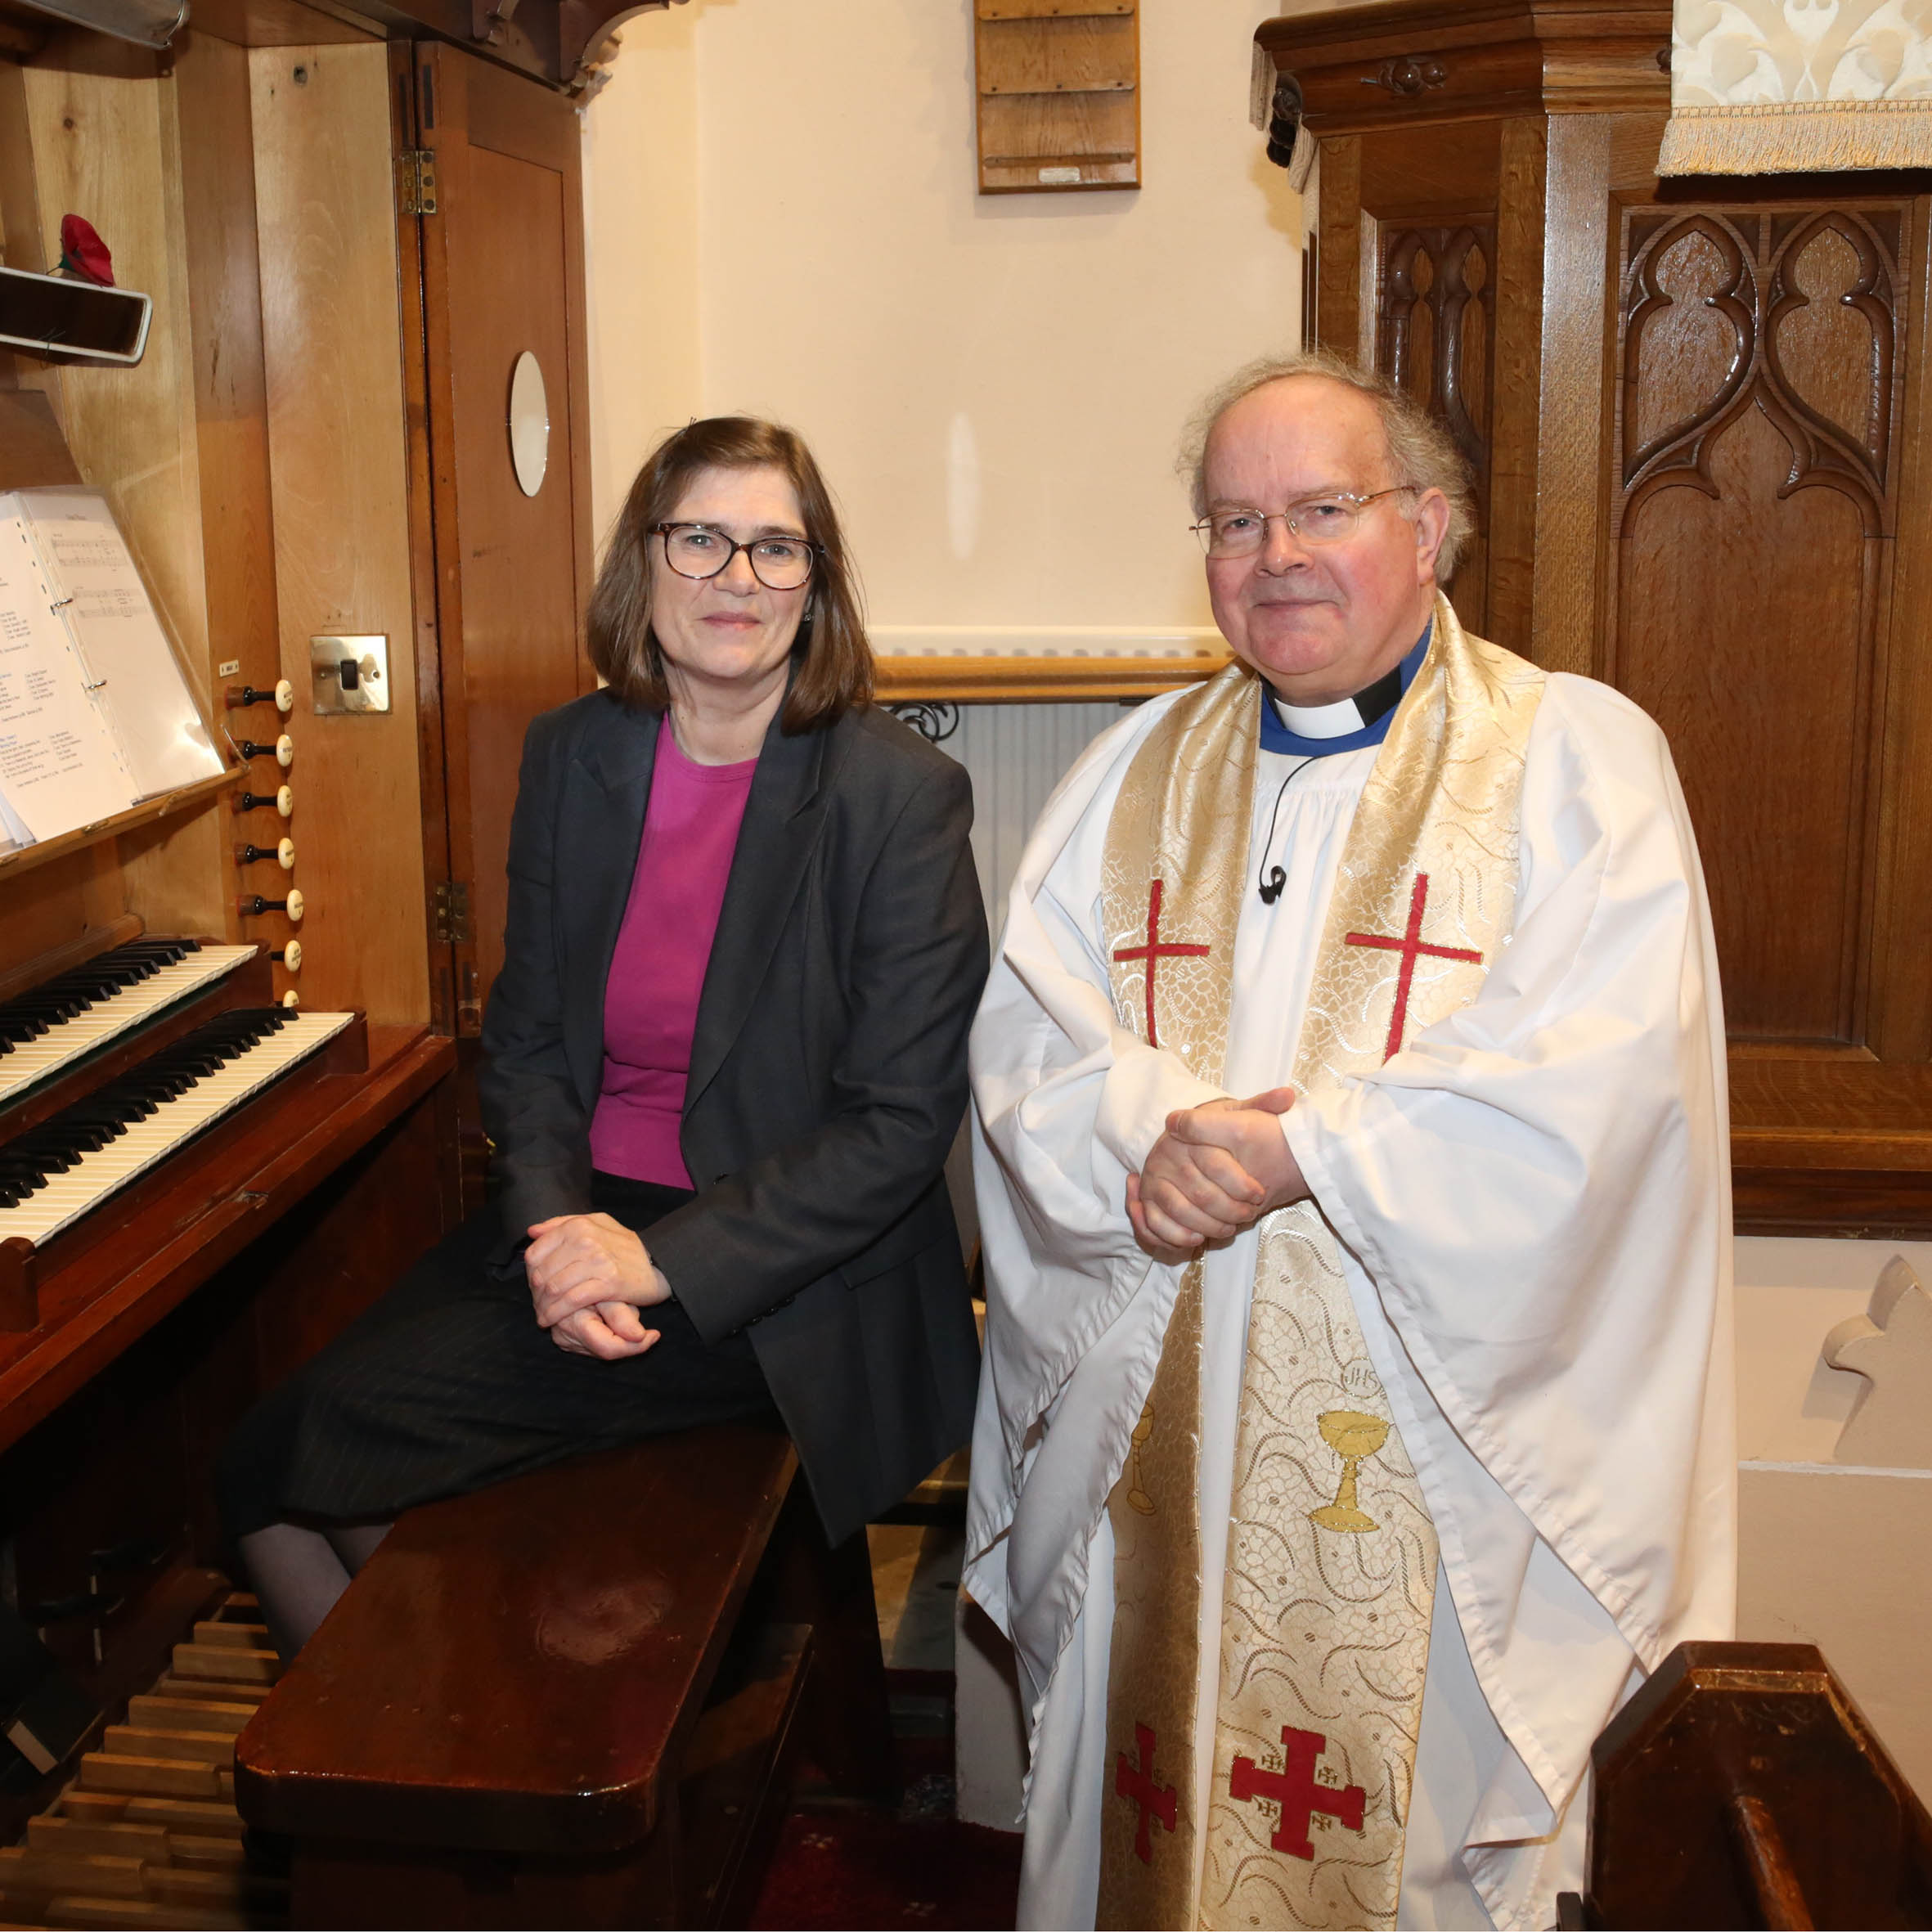 Denise Martin with the rector of St Bride's, Rev. Canon David Humphries